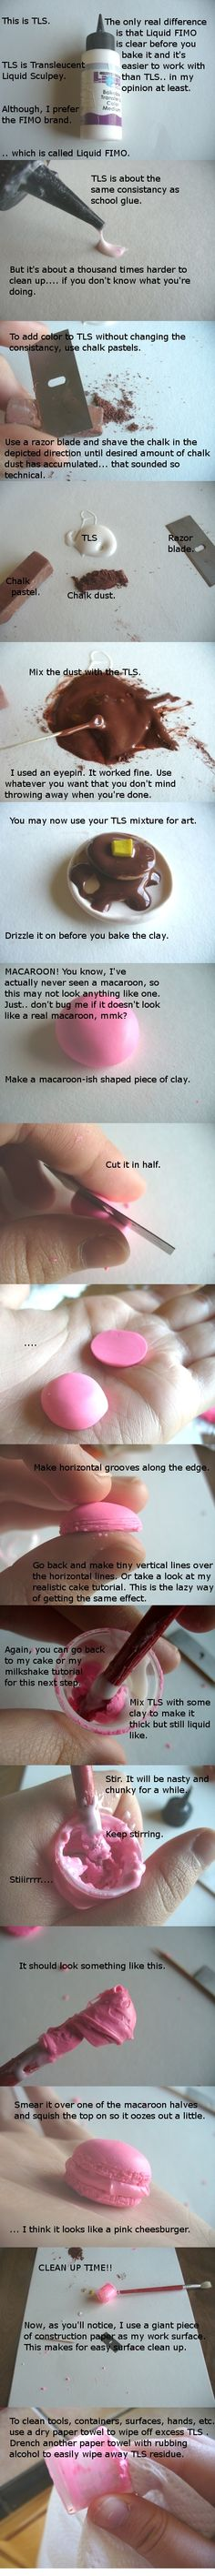 TLS Polymer Clay Tutorial by ~paperfaceparade on deviantART